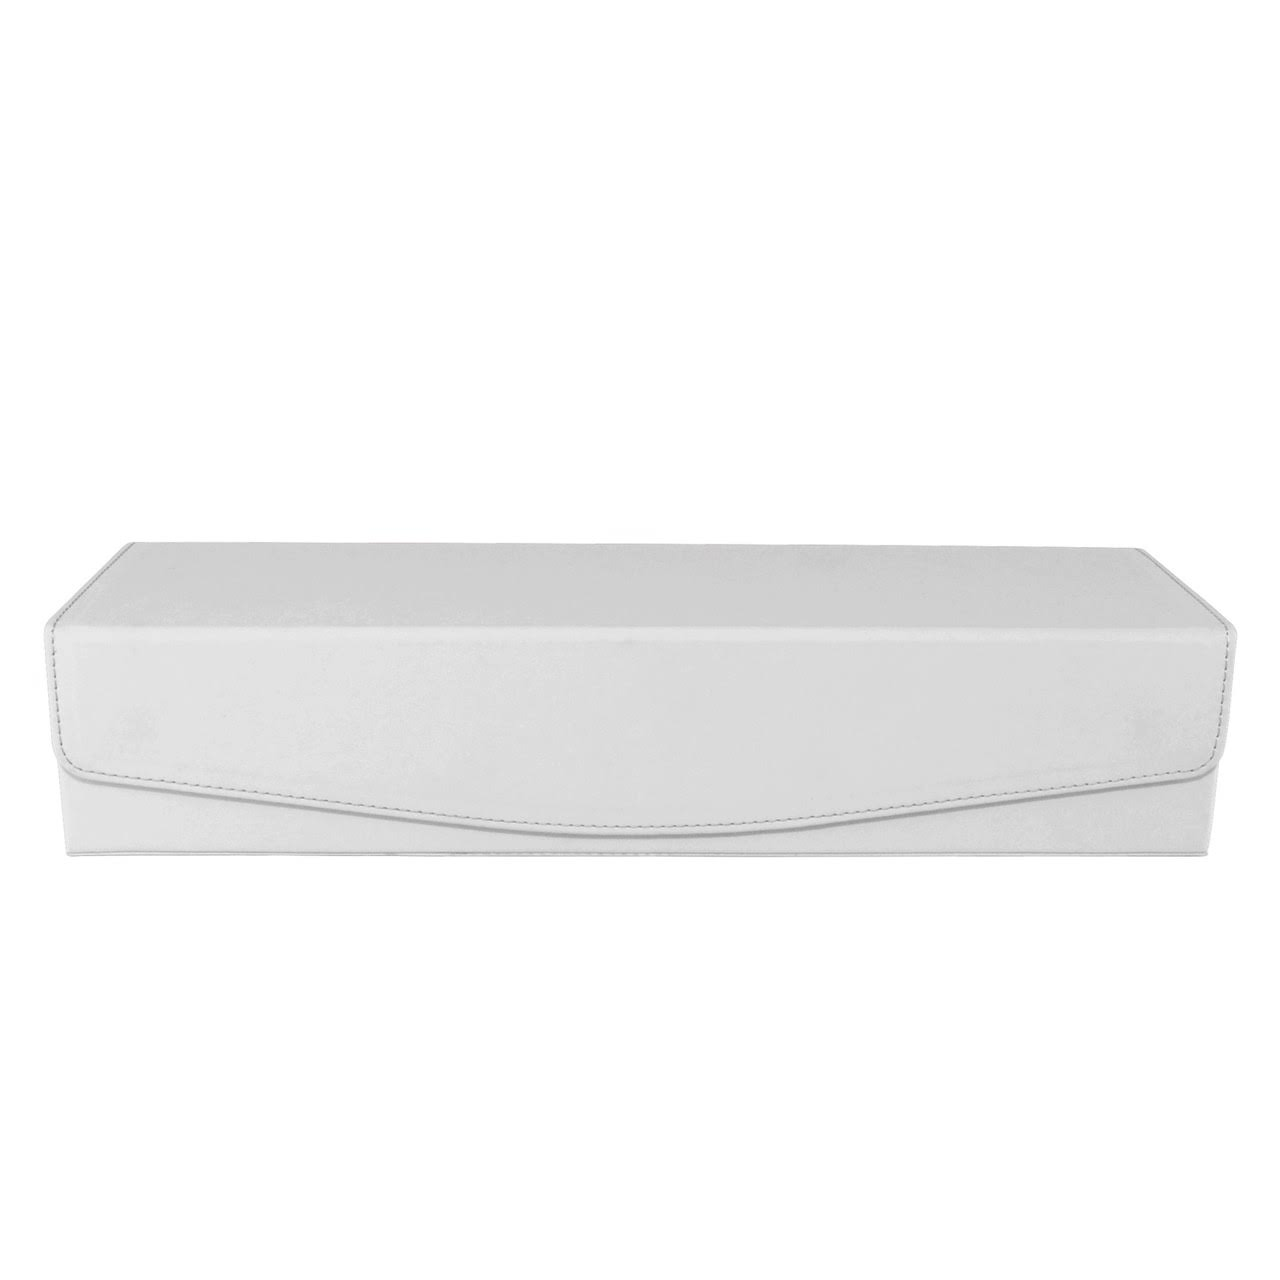 Dex Protection Supreme One Row Storage Box - White